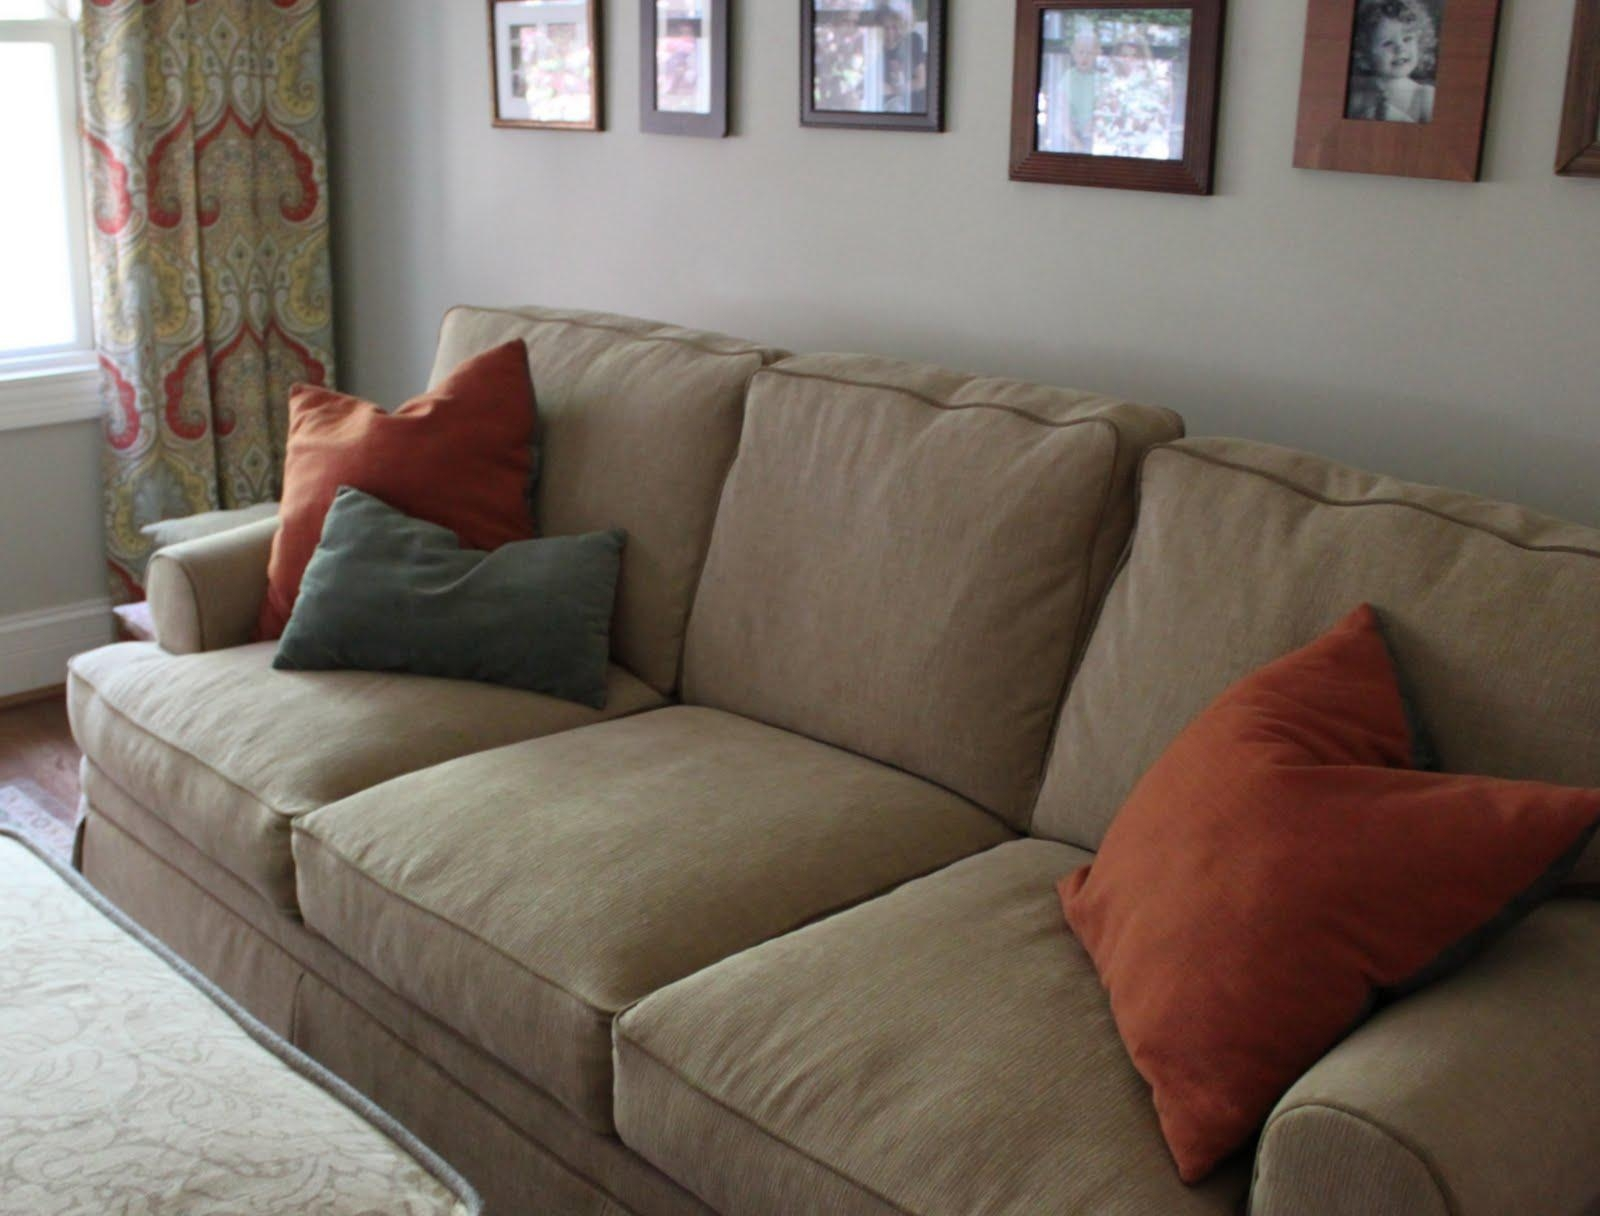 Big Comfy Sofa | Sofa Gallery | Kengire Pertaining To Big Comfy Sofas (View 2 of 25)